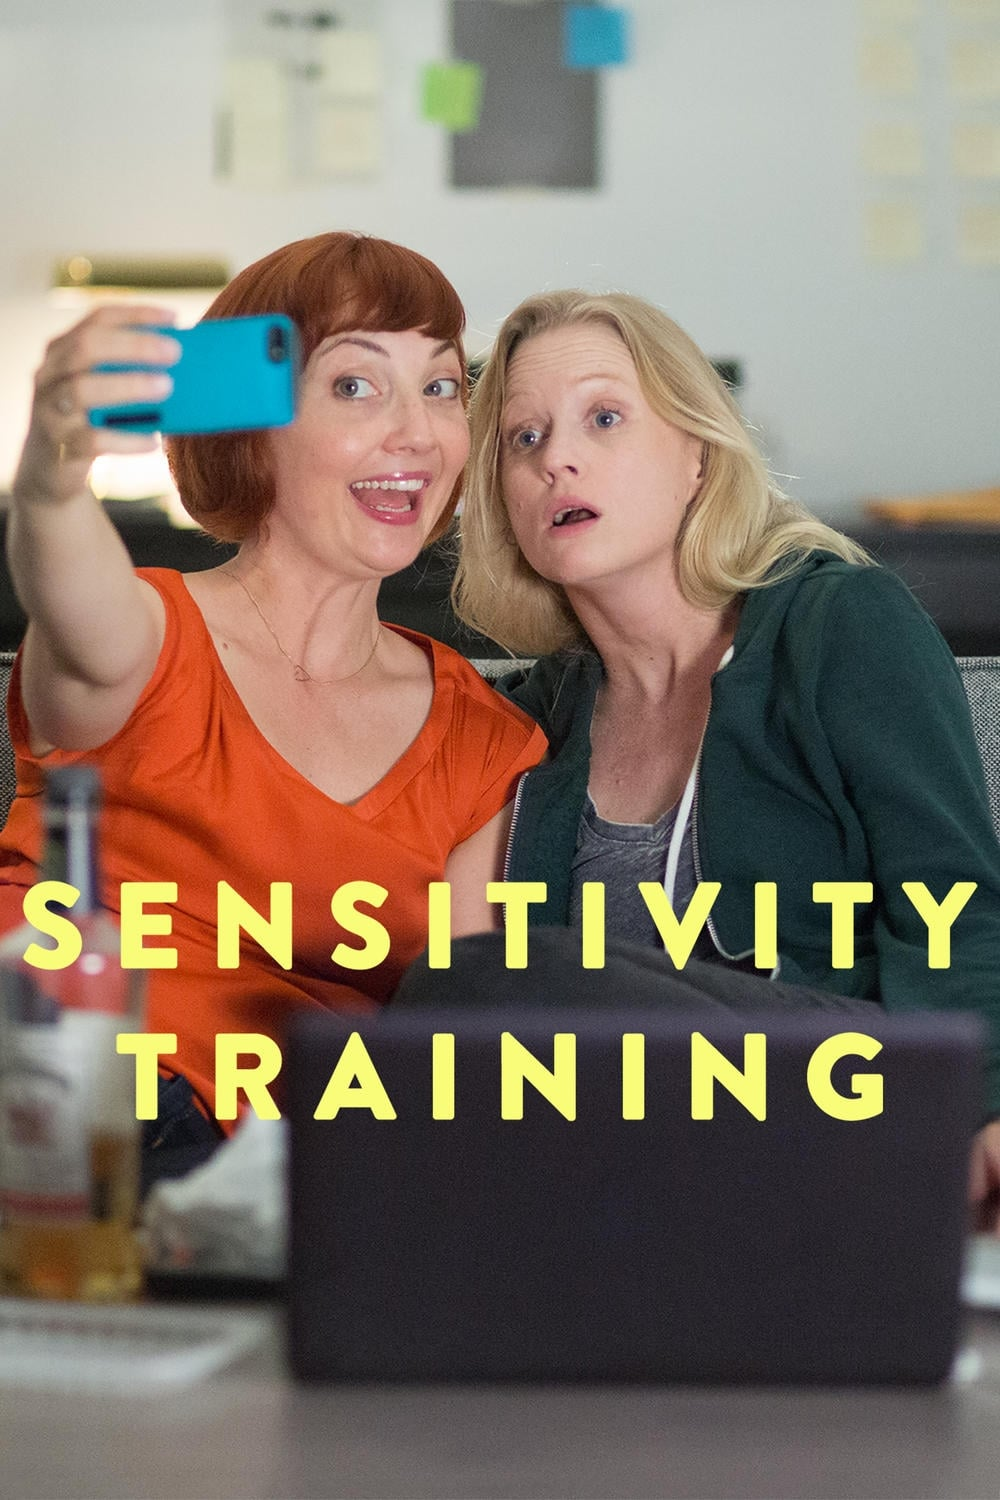 Sensitivity Training on FREECABLE TV